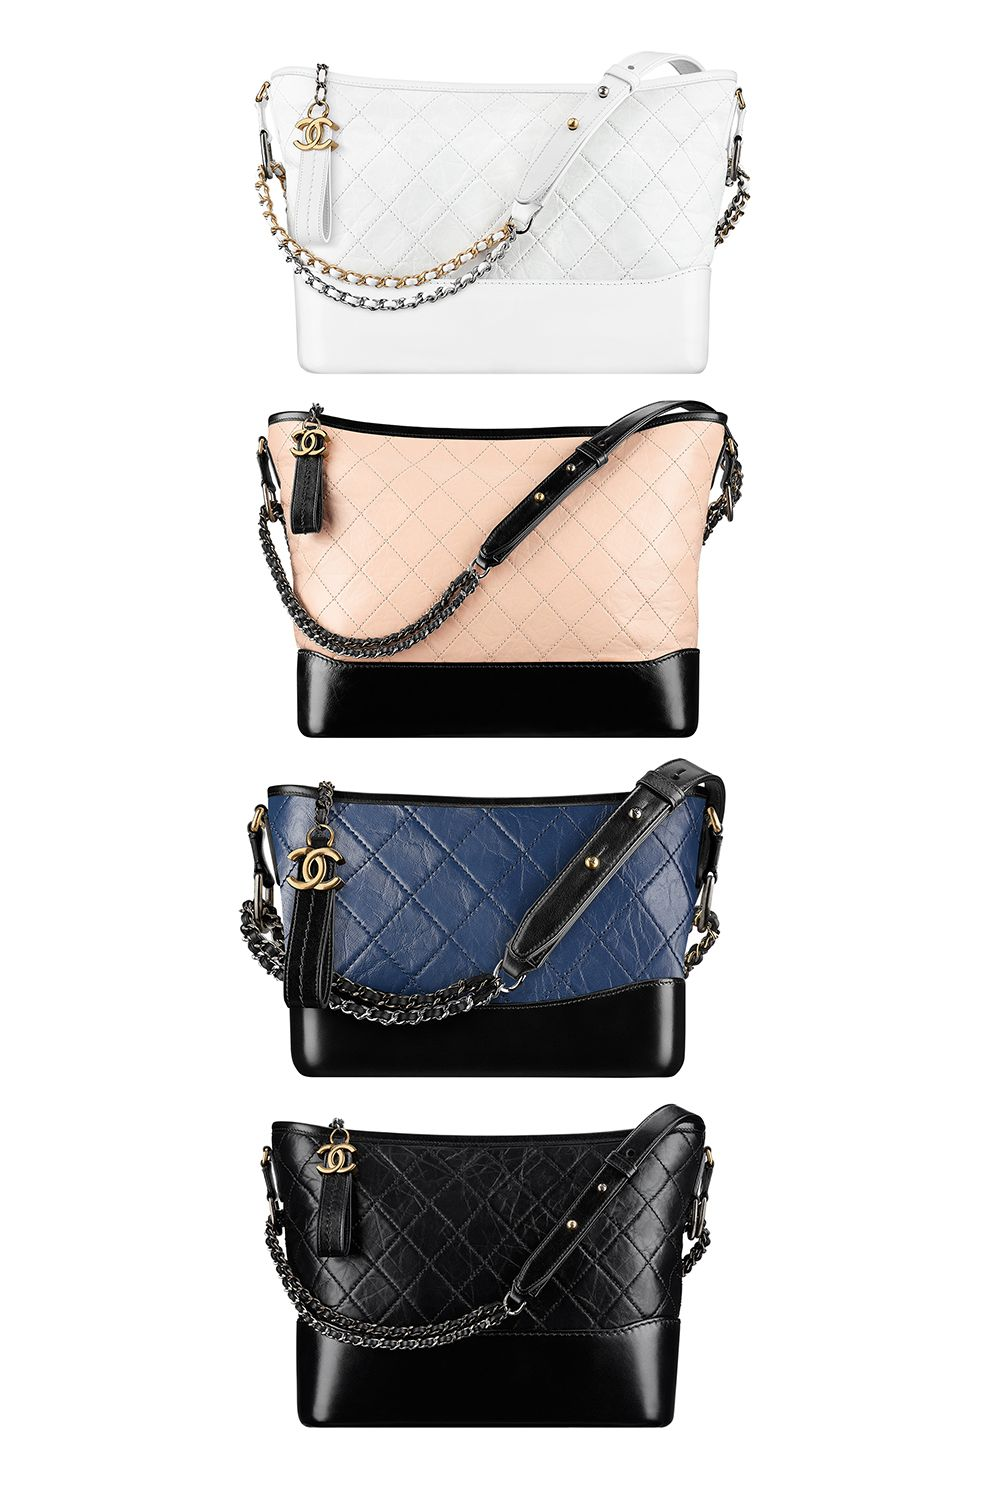 82ee271f922e 12 Designer Bags You Won t Regret Investing in This Spring